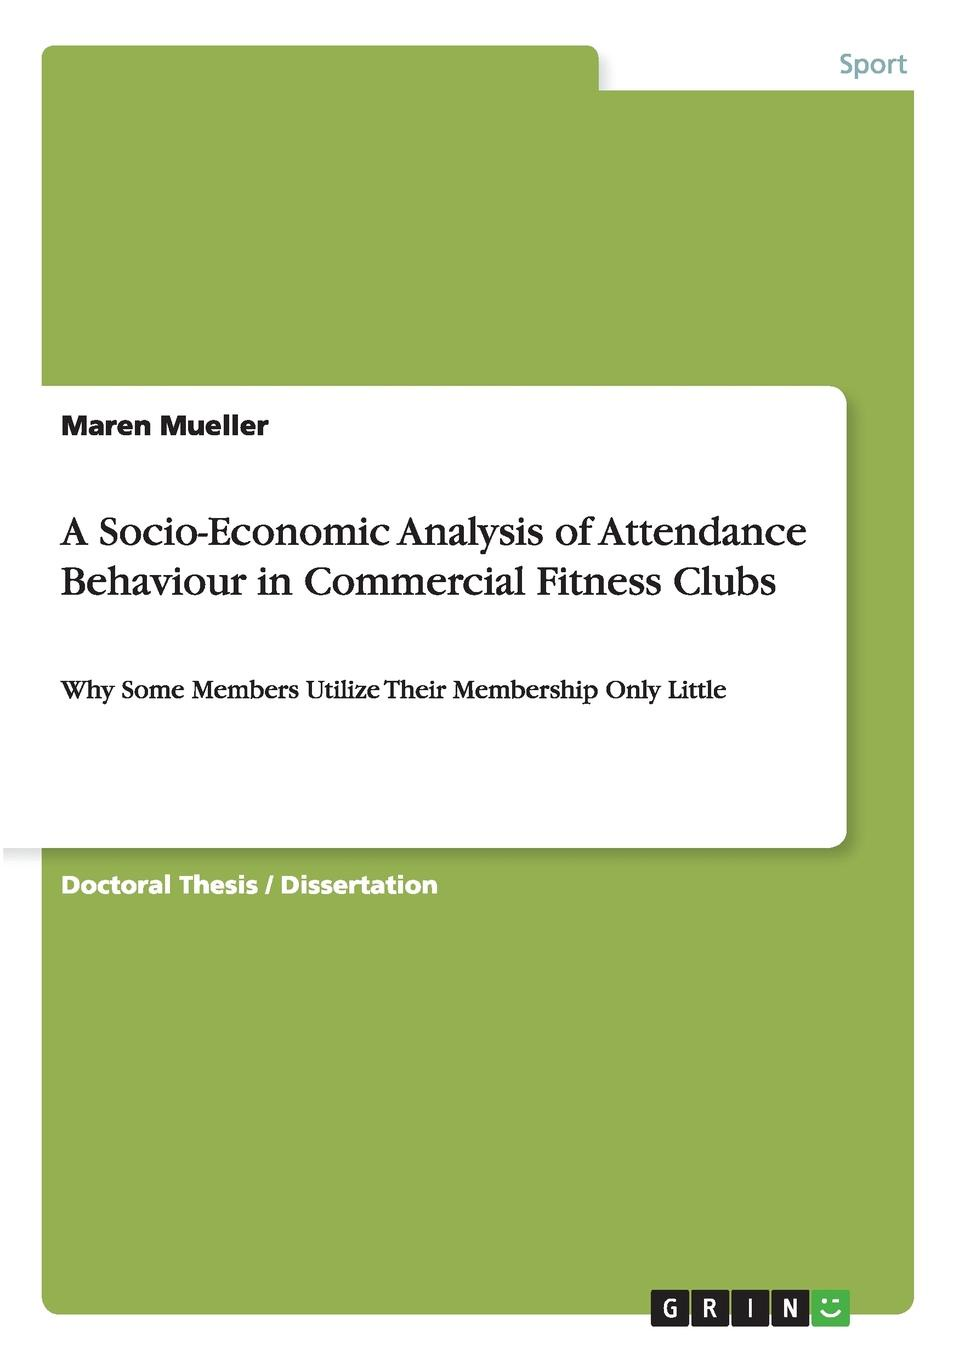 Maren Mueller A Socio-Economic Analysis of Attendance Behaviour in Commercial Fitness Clubs